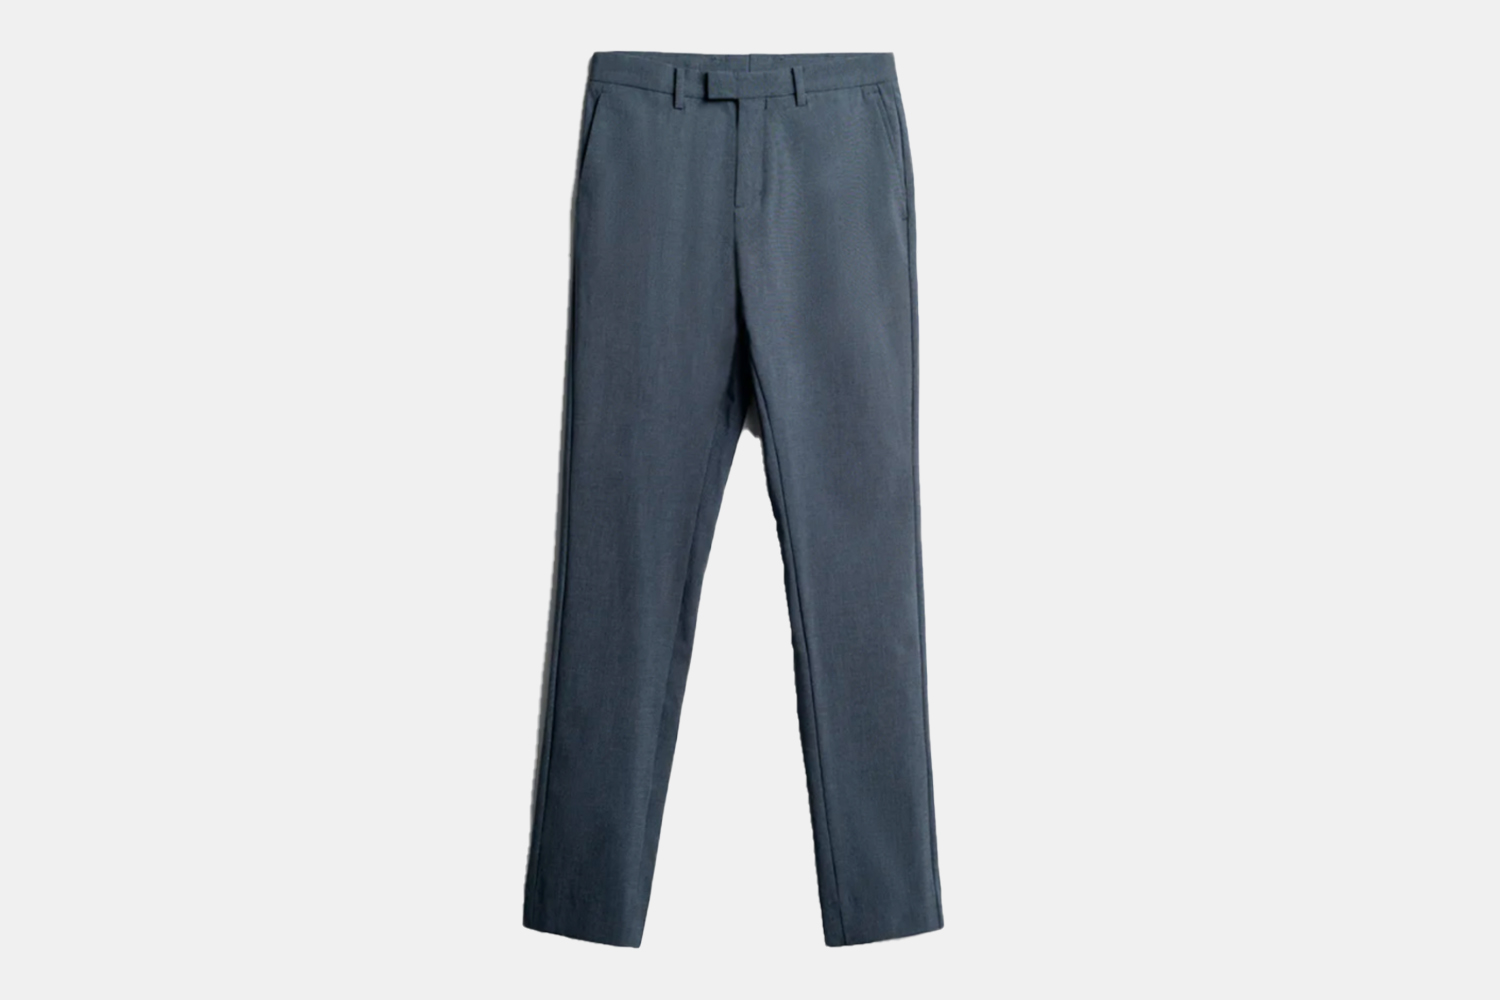 a pair of tabbed, navy houndstooth trousers.